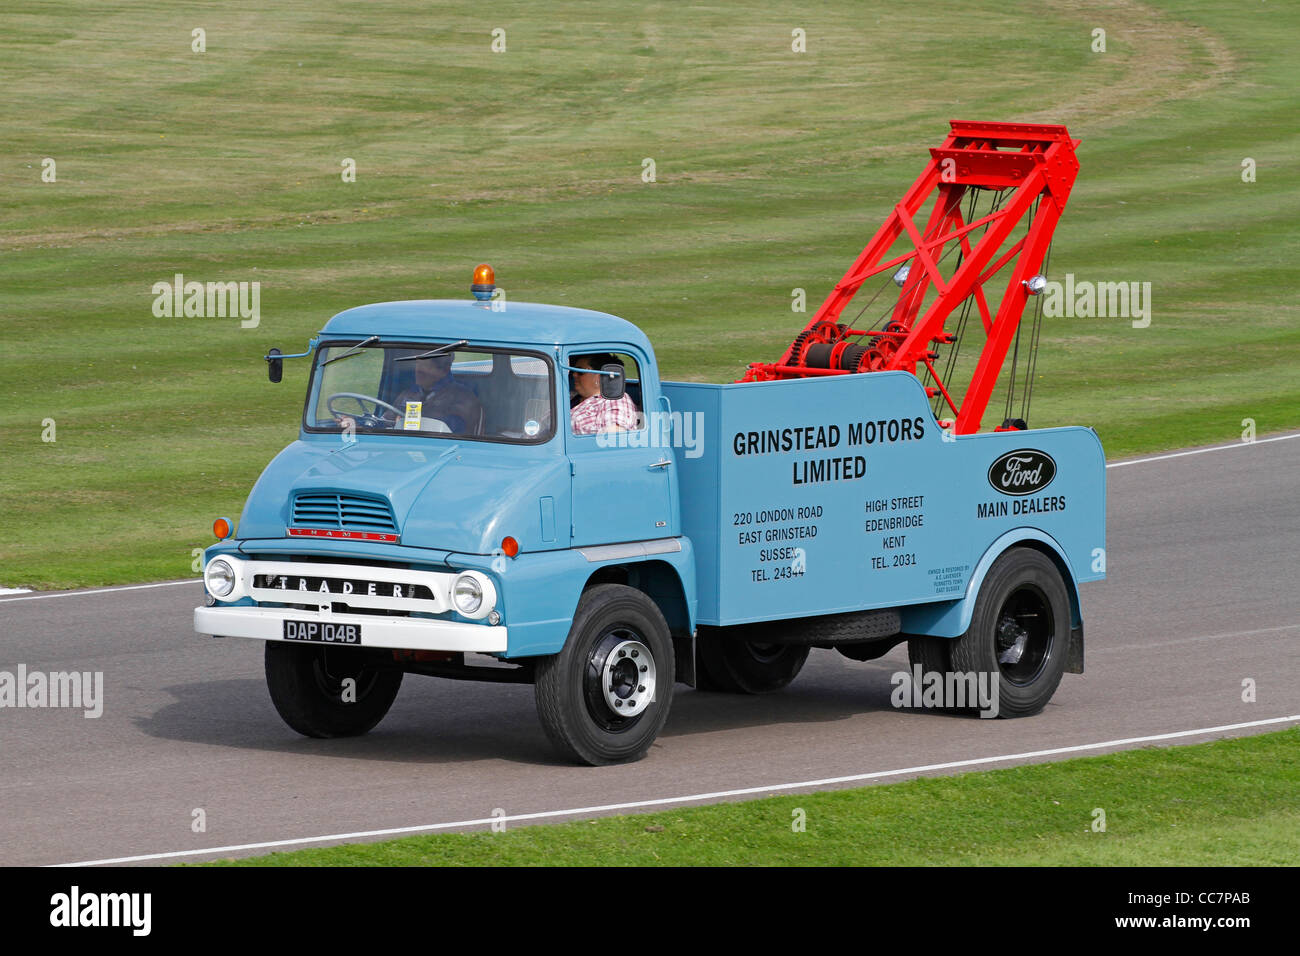 1964 Ford Thames Trader breakdown recovery truck at the 2011 Goodwood Revival, Sussex, UK. - Stock Image